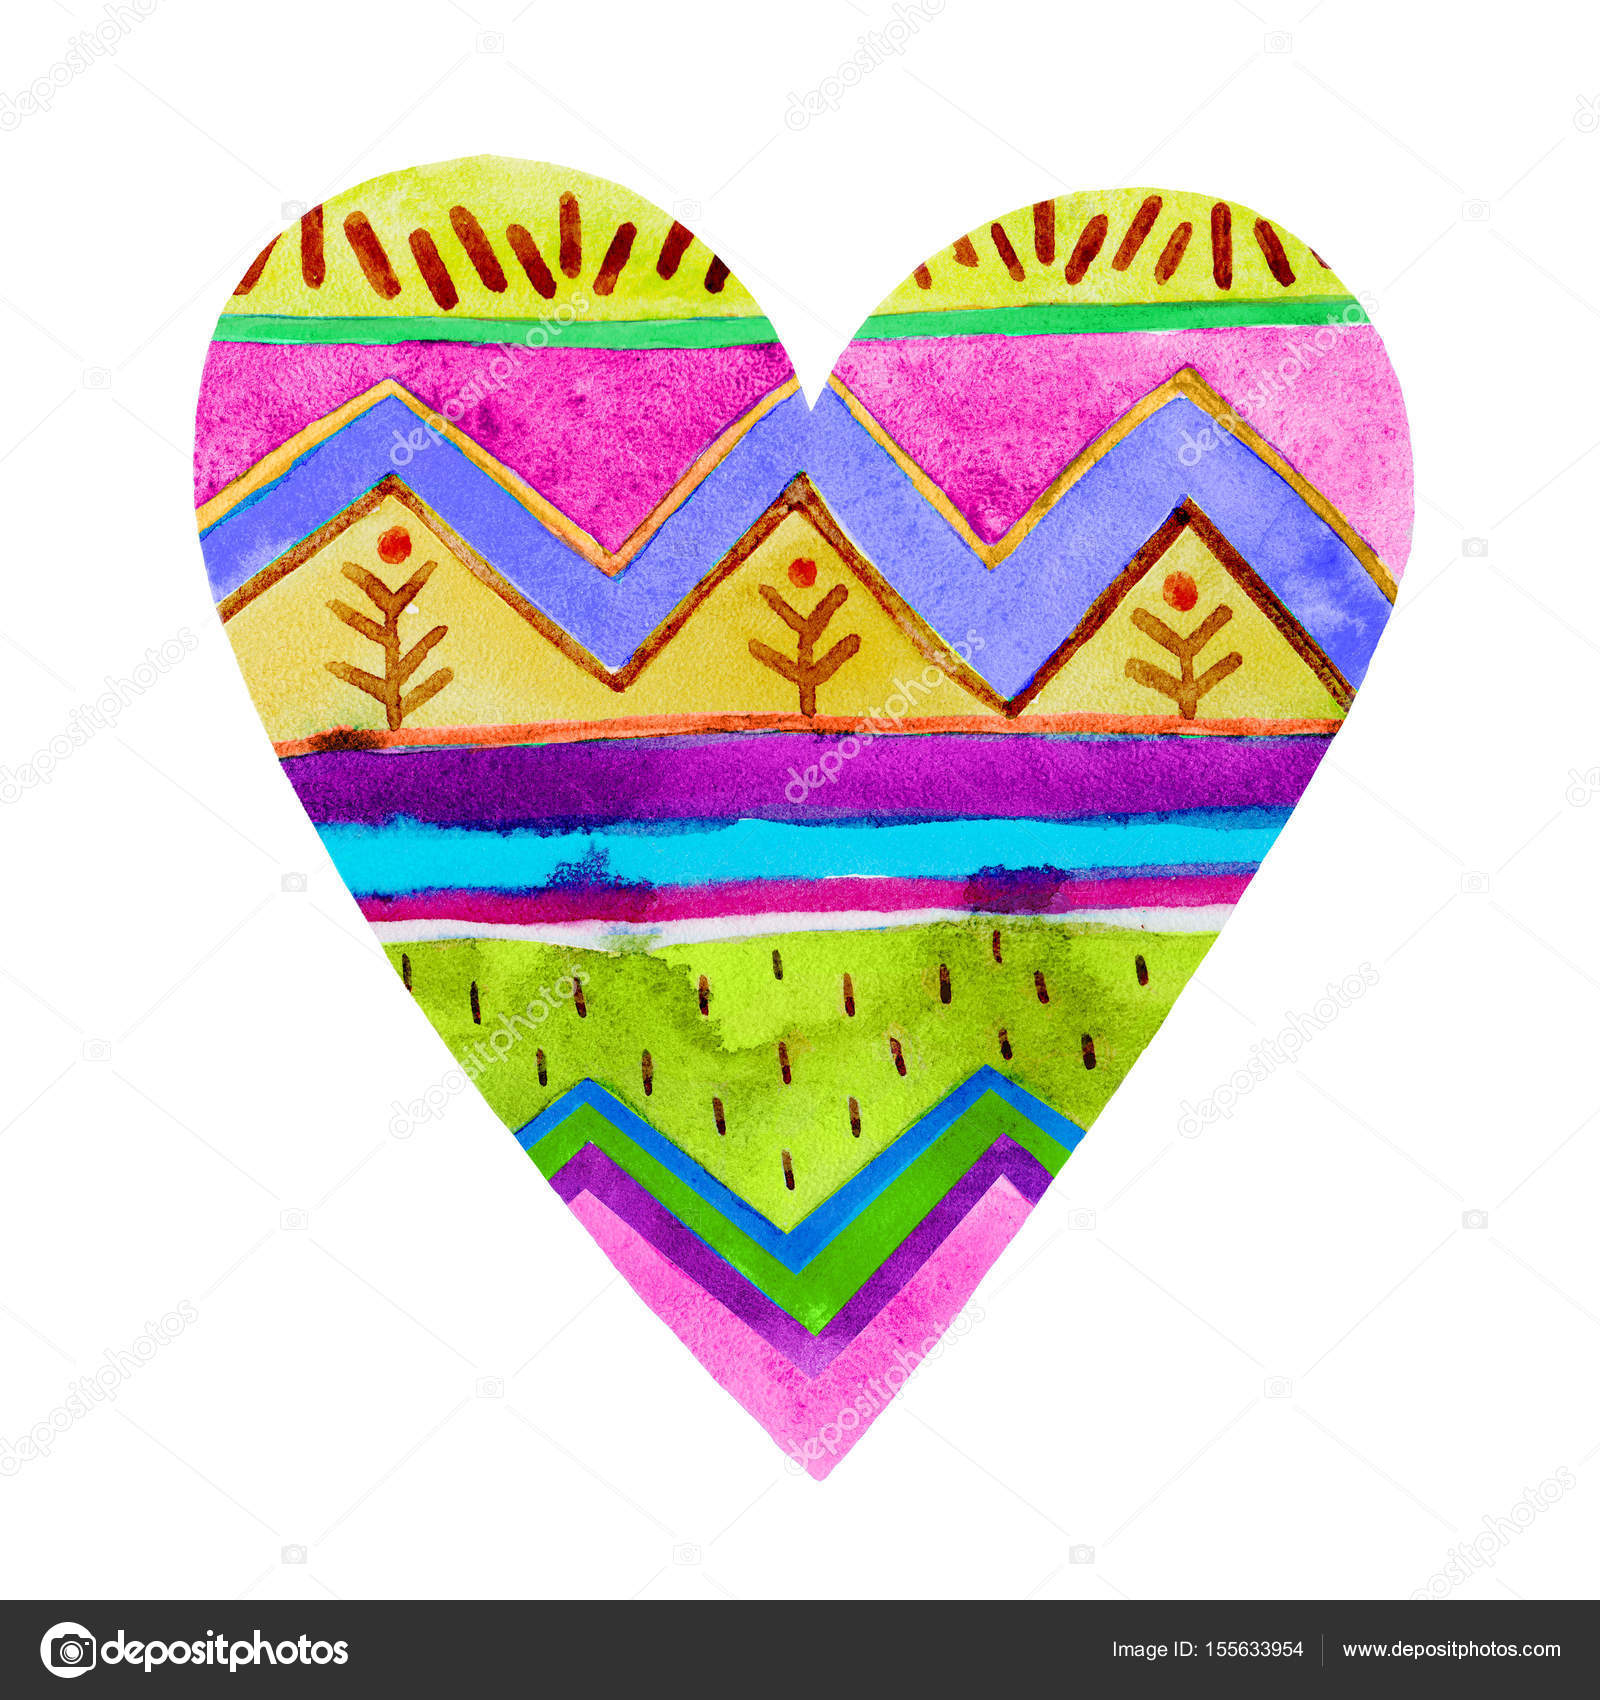 lovely cartoon watercolor love heart valentines patterncolorful heart with geometric print illustrations isolated on